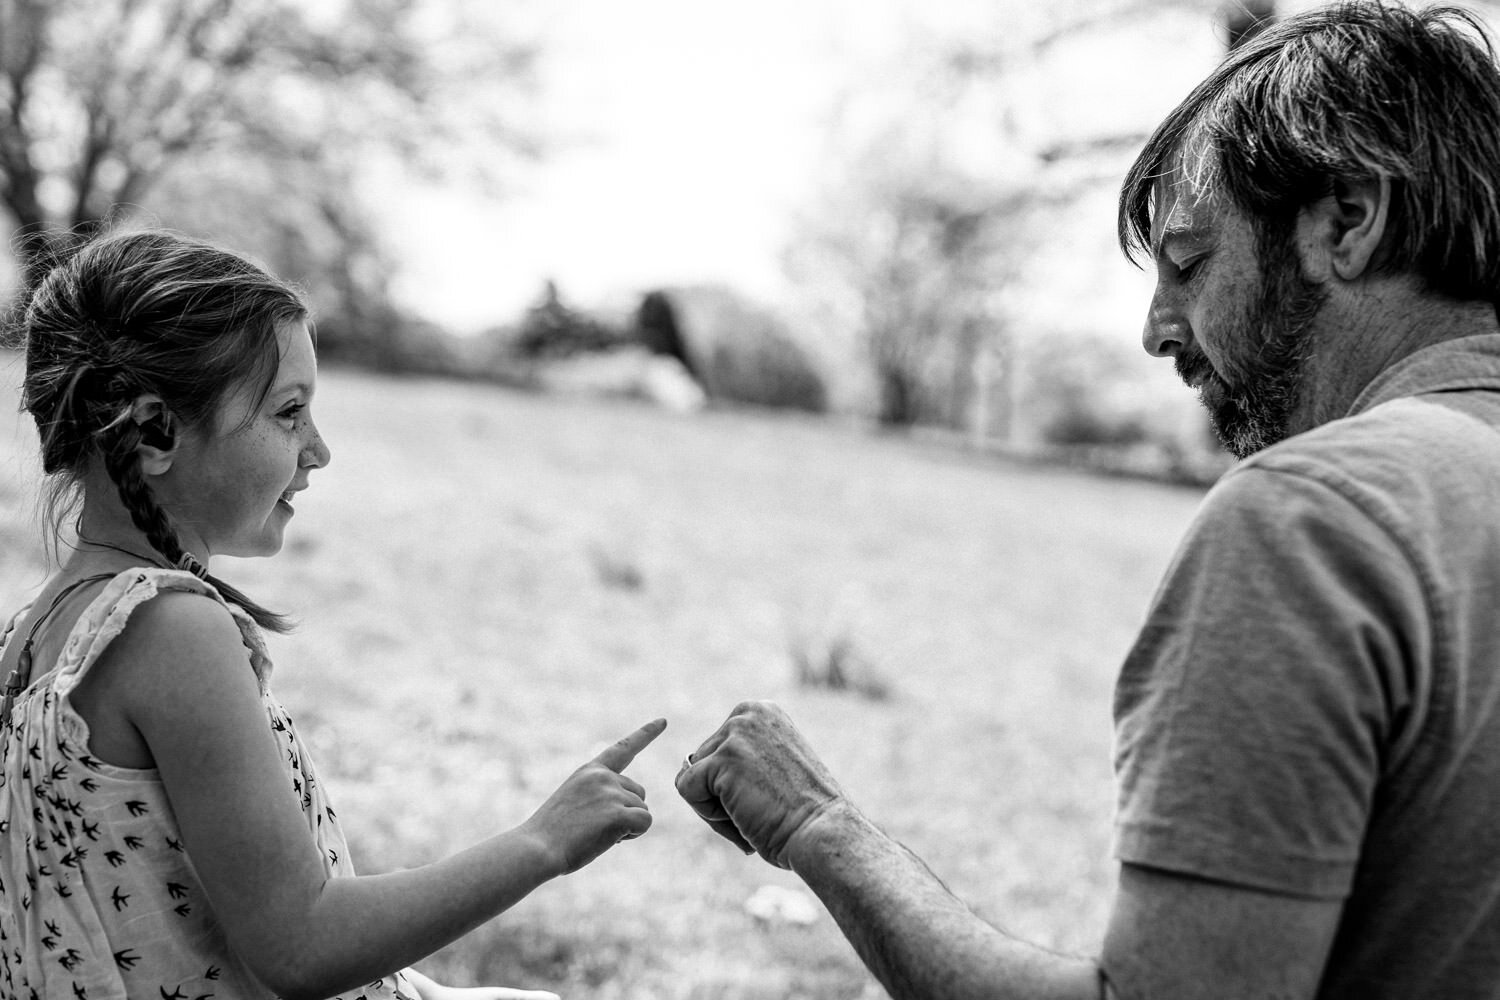 A father and daughter bump fists.